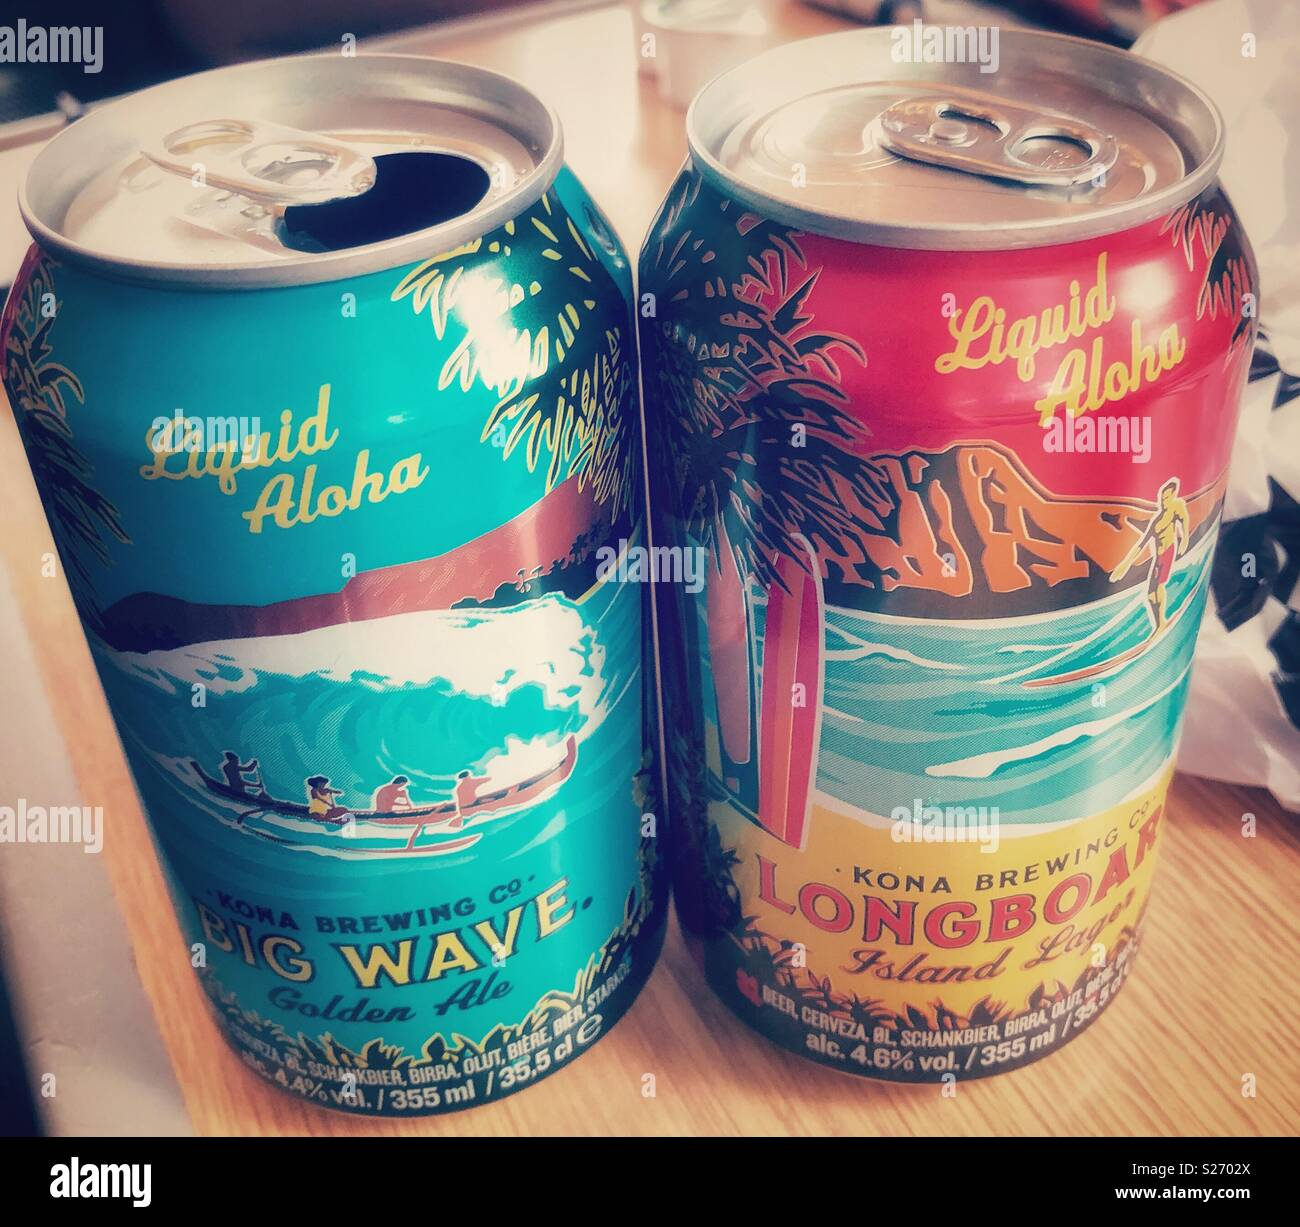 Craft Beer Cans Stock Photos & Craft Beer Cans Stock Images - Alamy